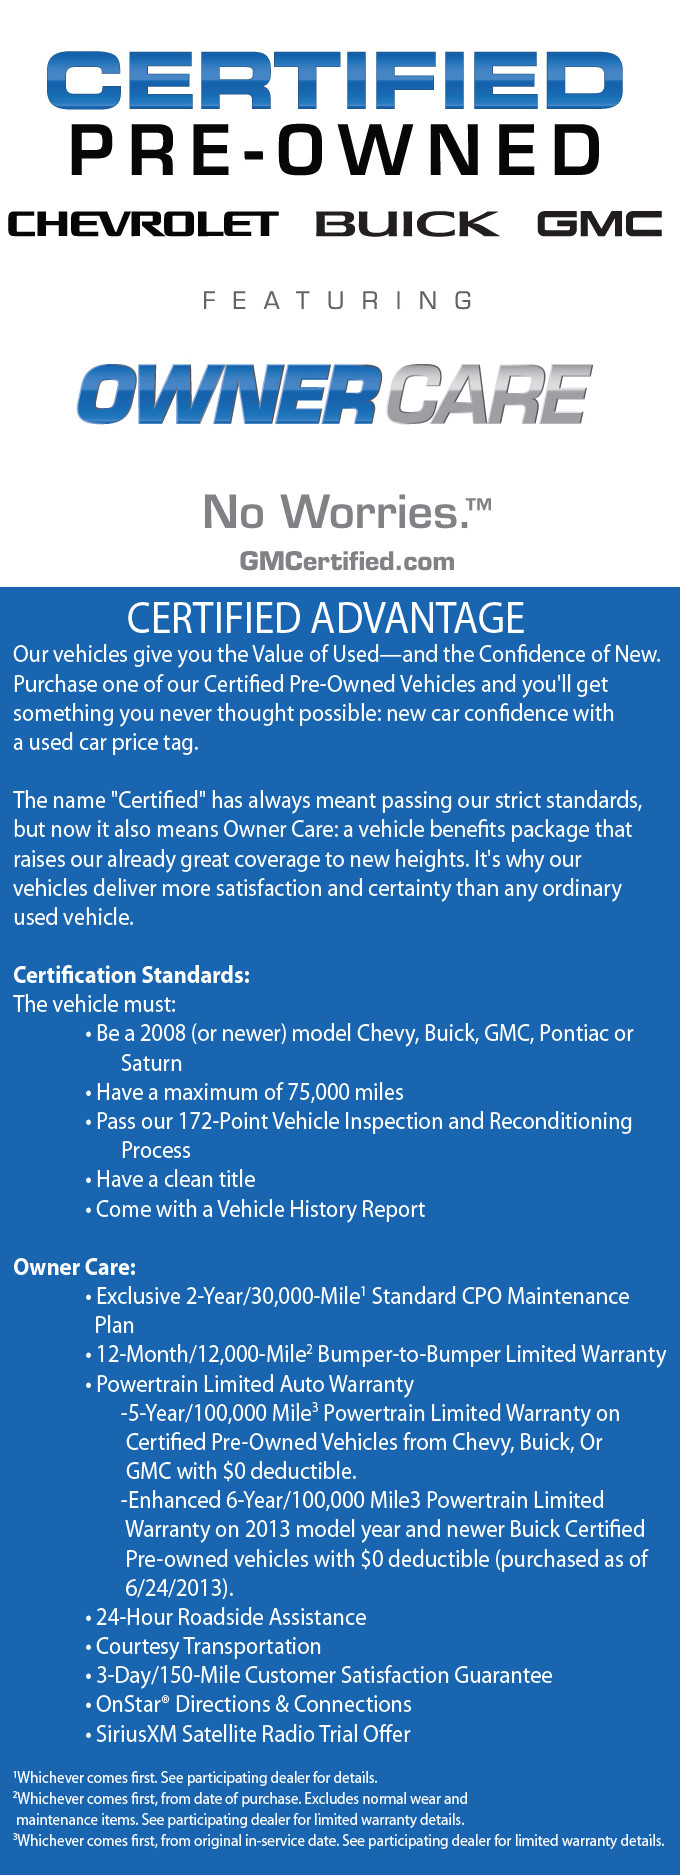 Certified No Worries Owners Care